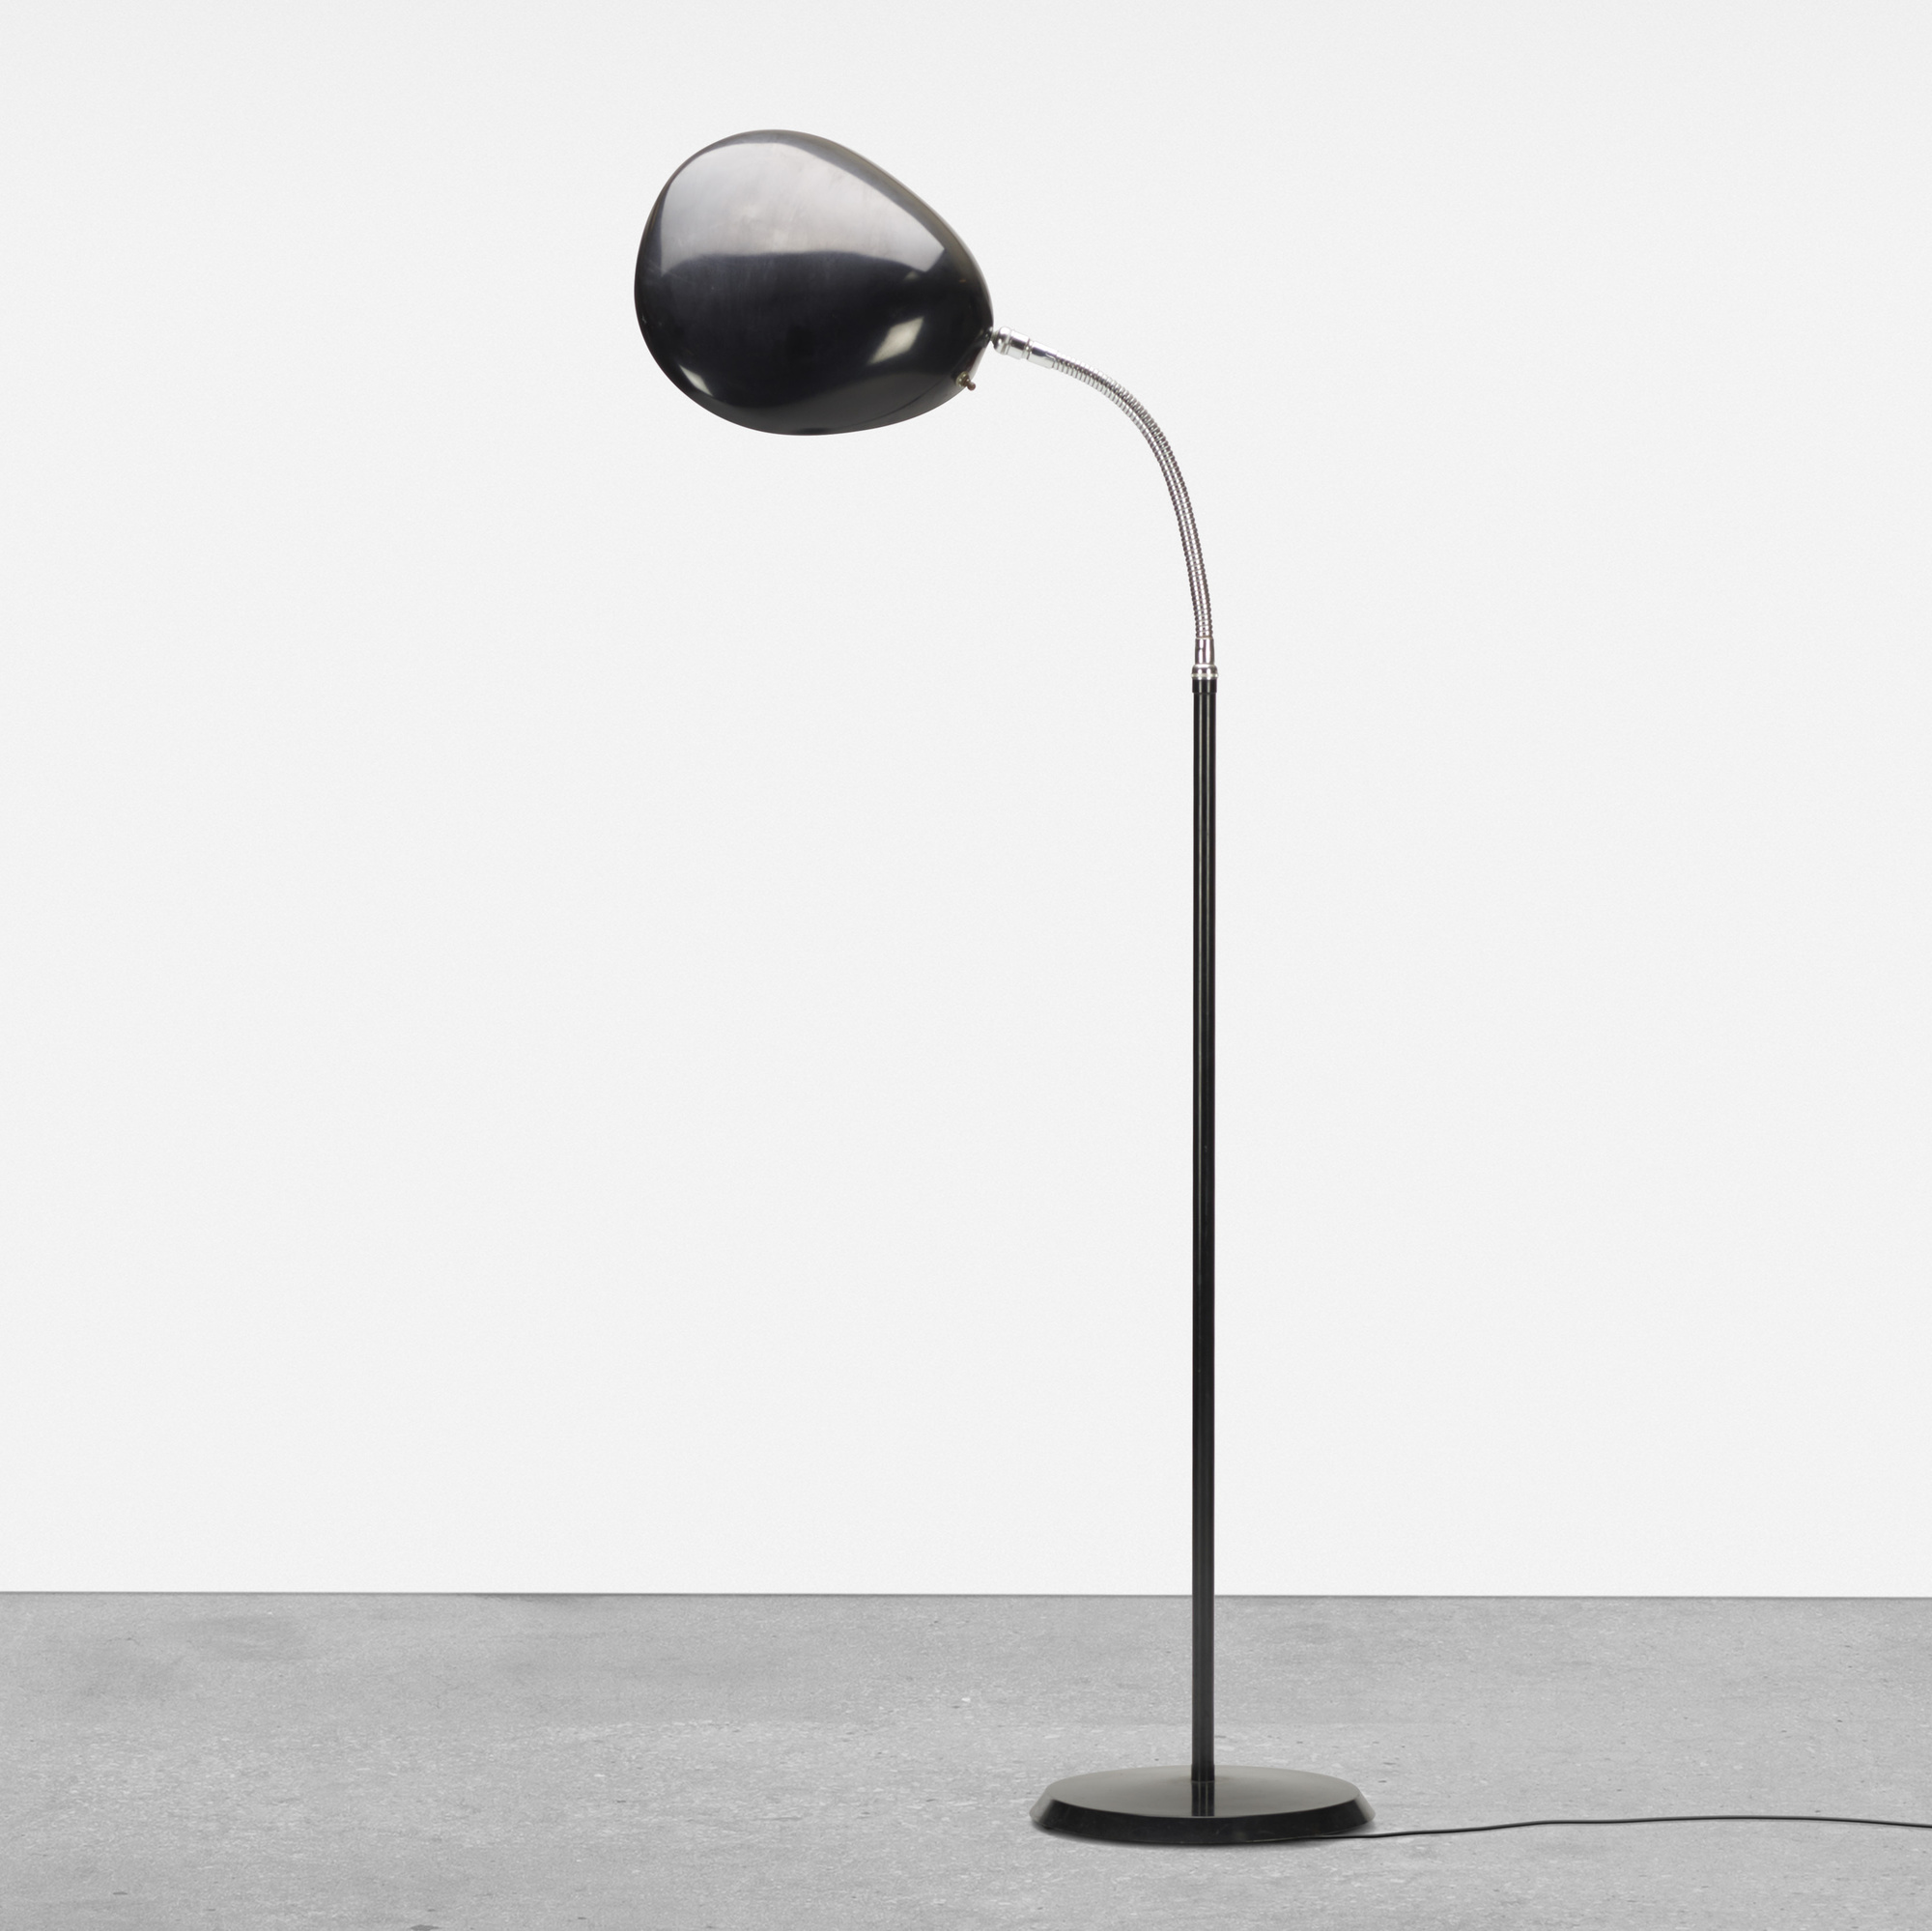 355: Greta Magnusson Grossman / Cobra floor lamp (1 of 2)